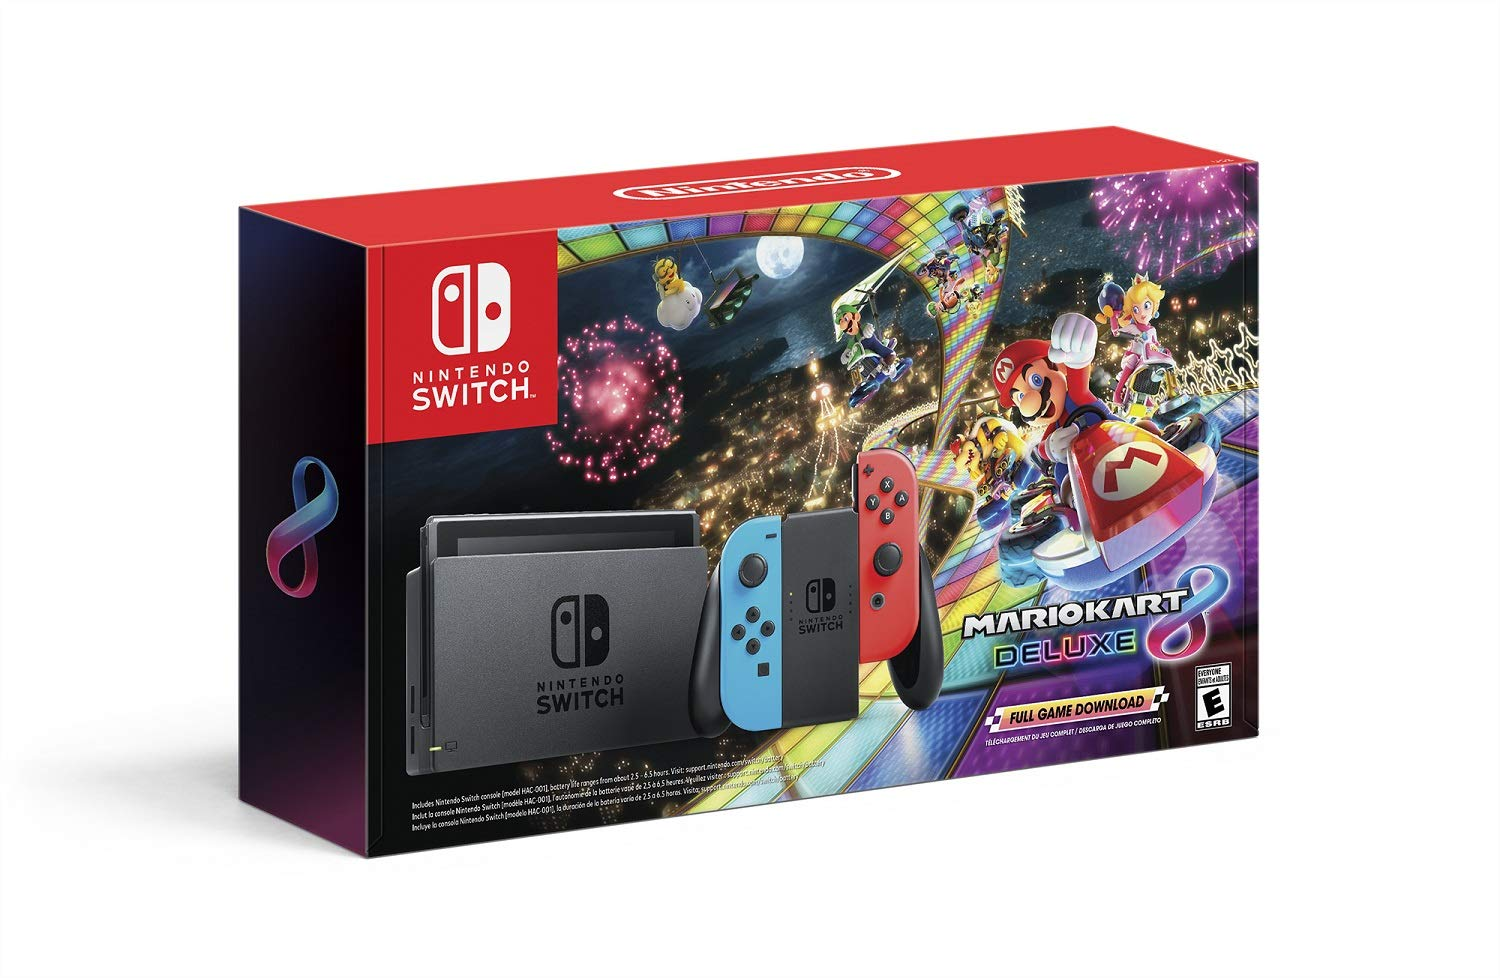 Nintendo Switch w/ Neon Blue & Neon Red Joy-Con + Mario Kart 8 Deluxe (Full Game Download) - Switch